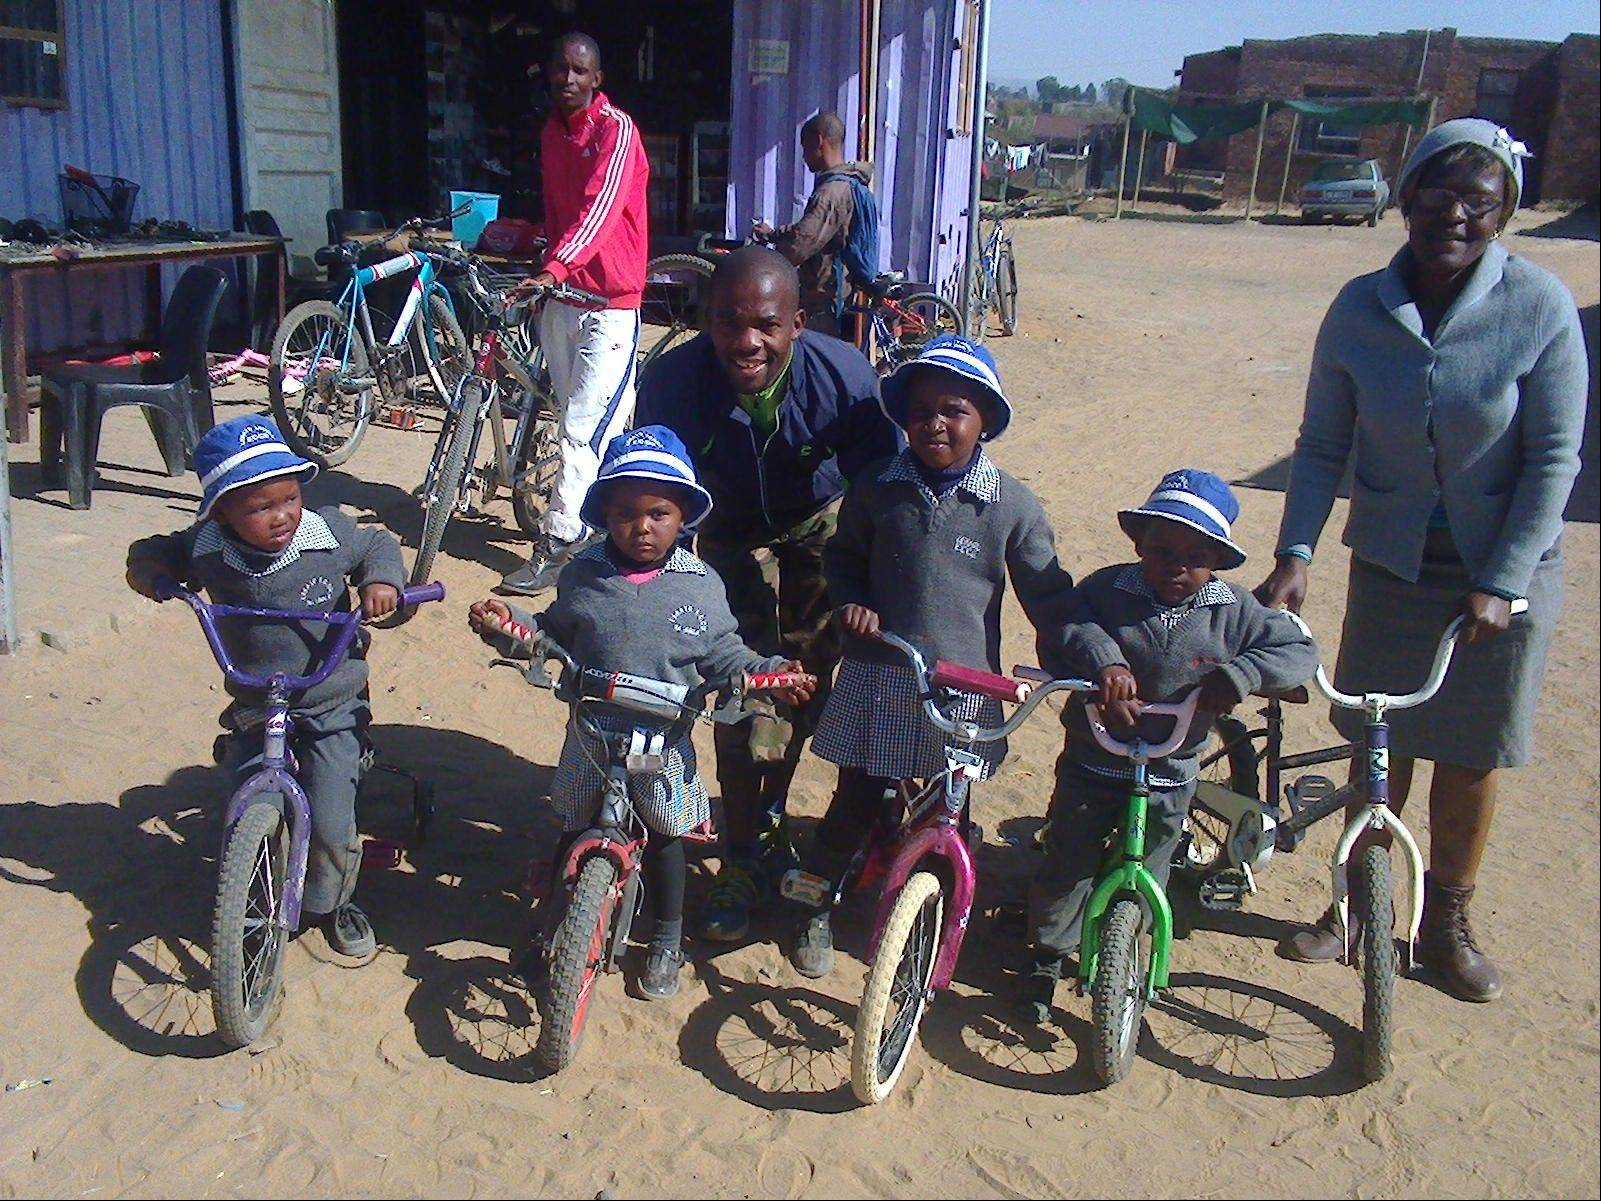 These four little boys from an orphanage in Lesotho received bikes from the shipment sent in May.